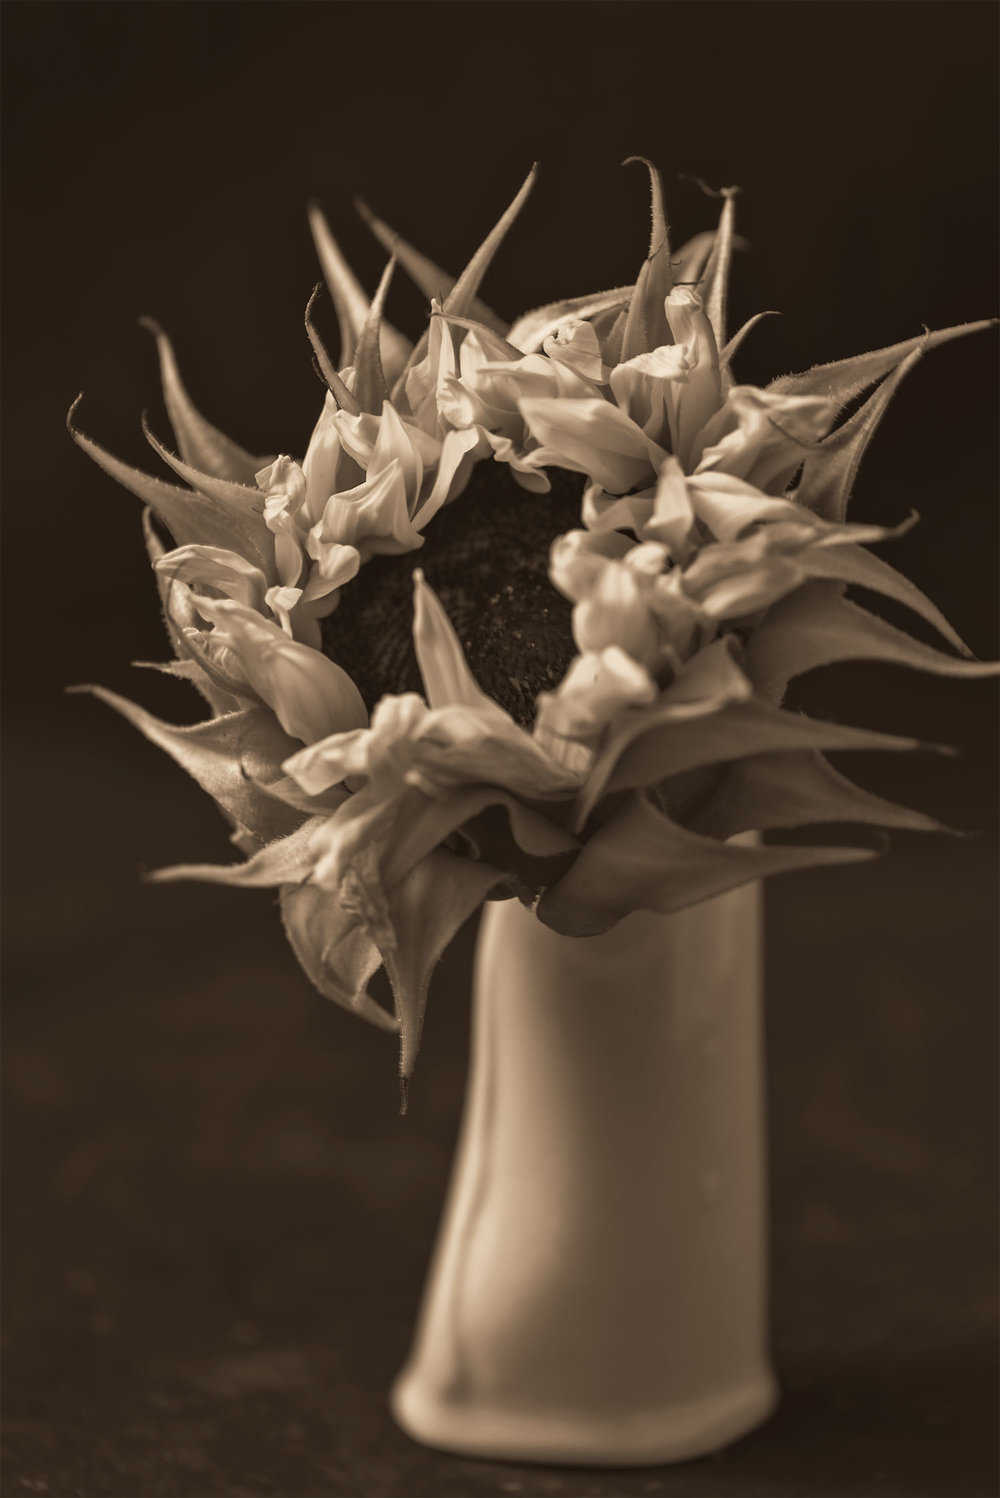 Sunflower in a Vase Photograph